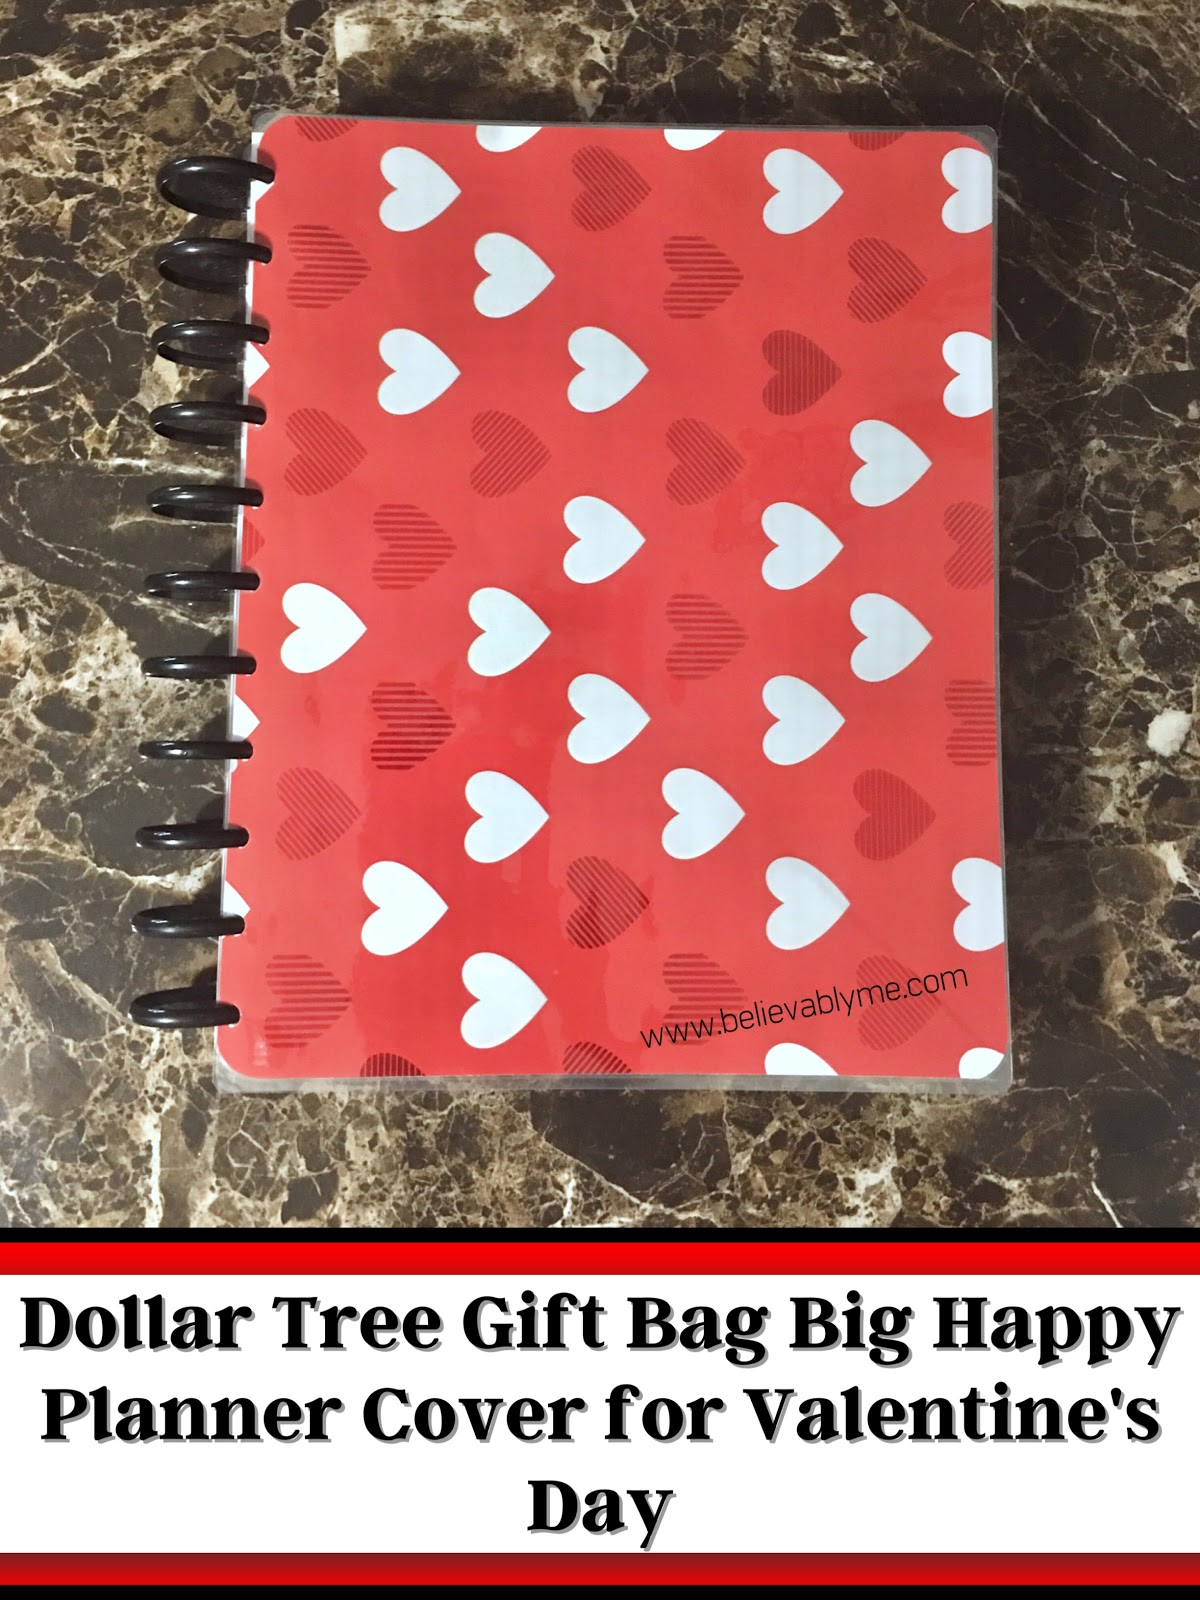 Believably Me Dollar Tree Gift Bag Big Happy Planner Cover For